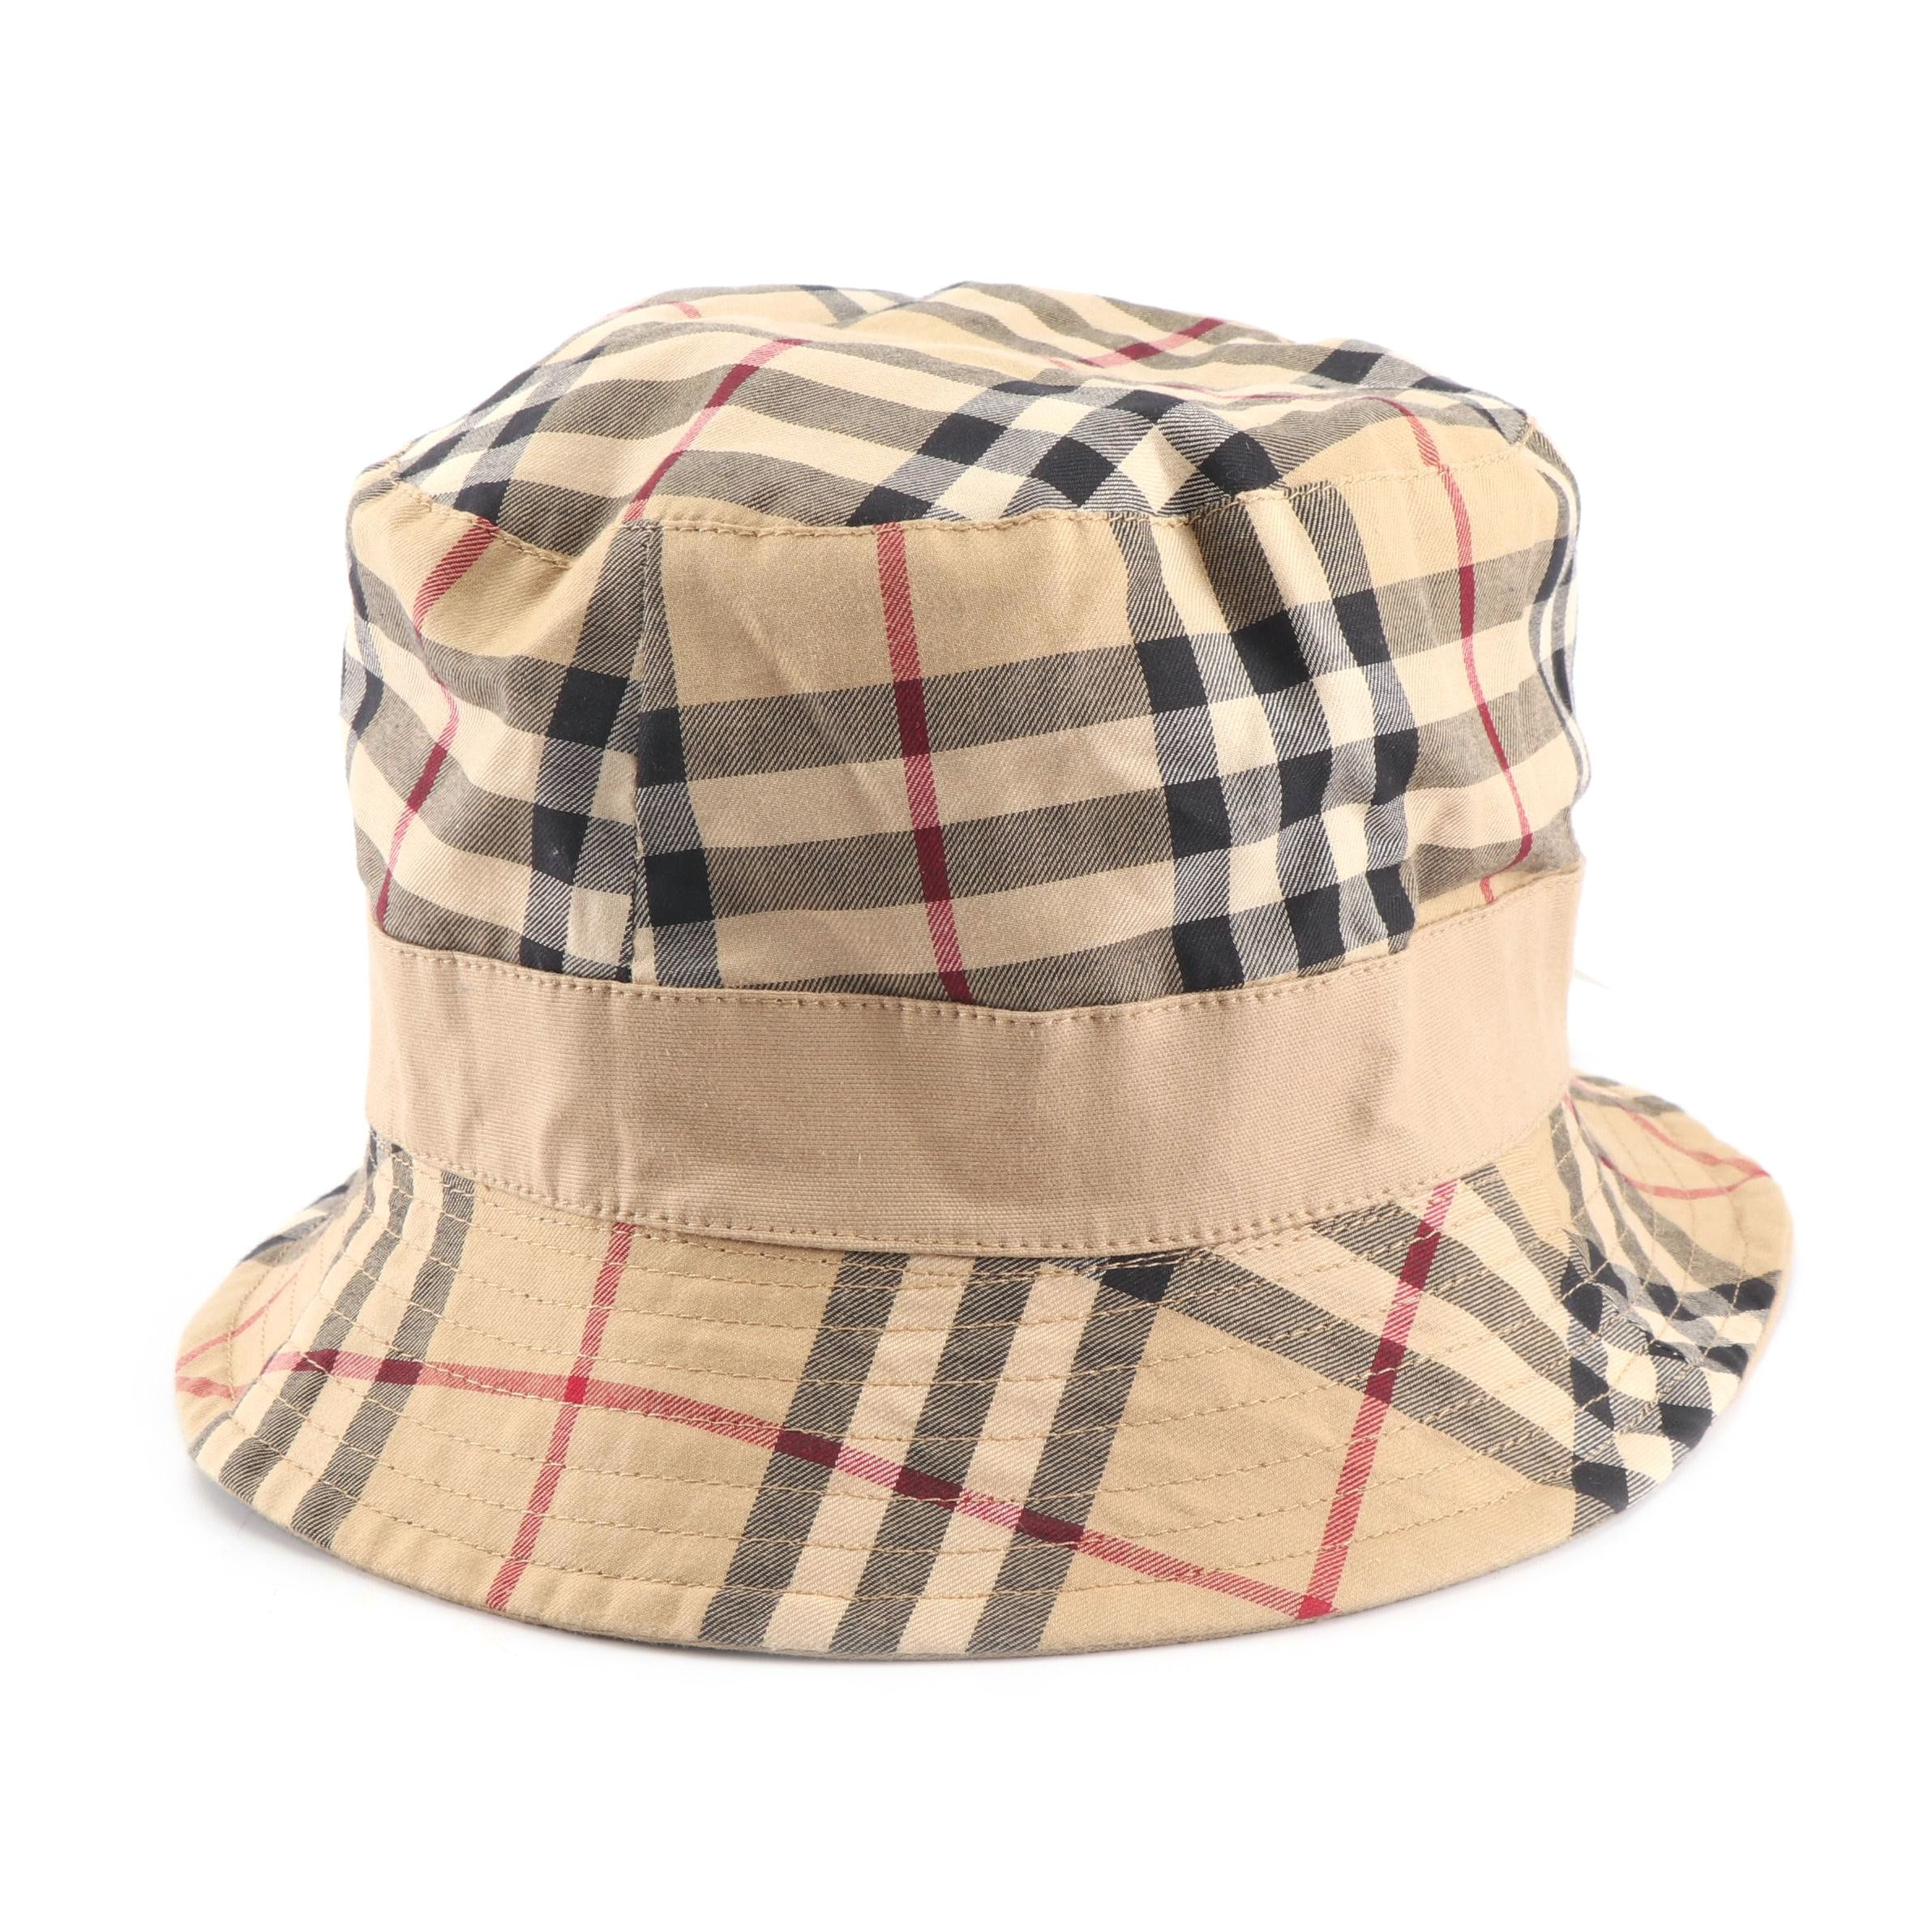 "Burberry ""Nova Check"" Bucket Hat"